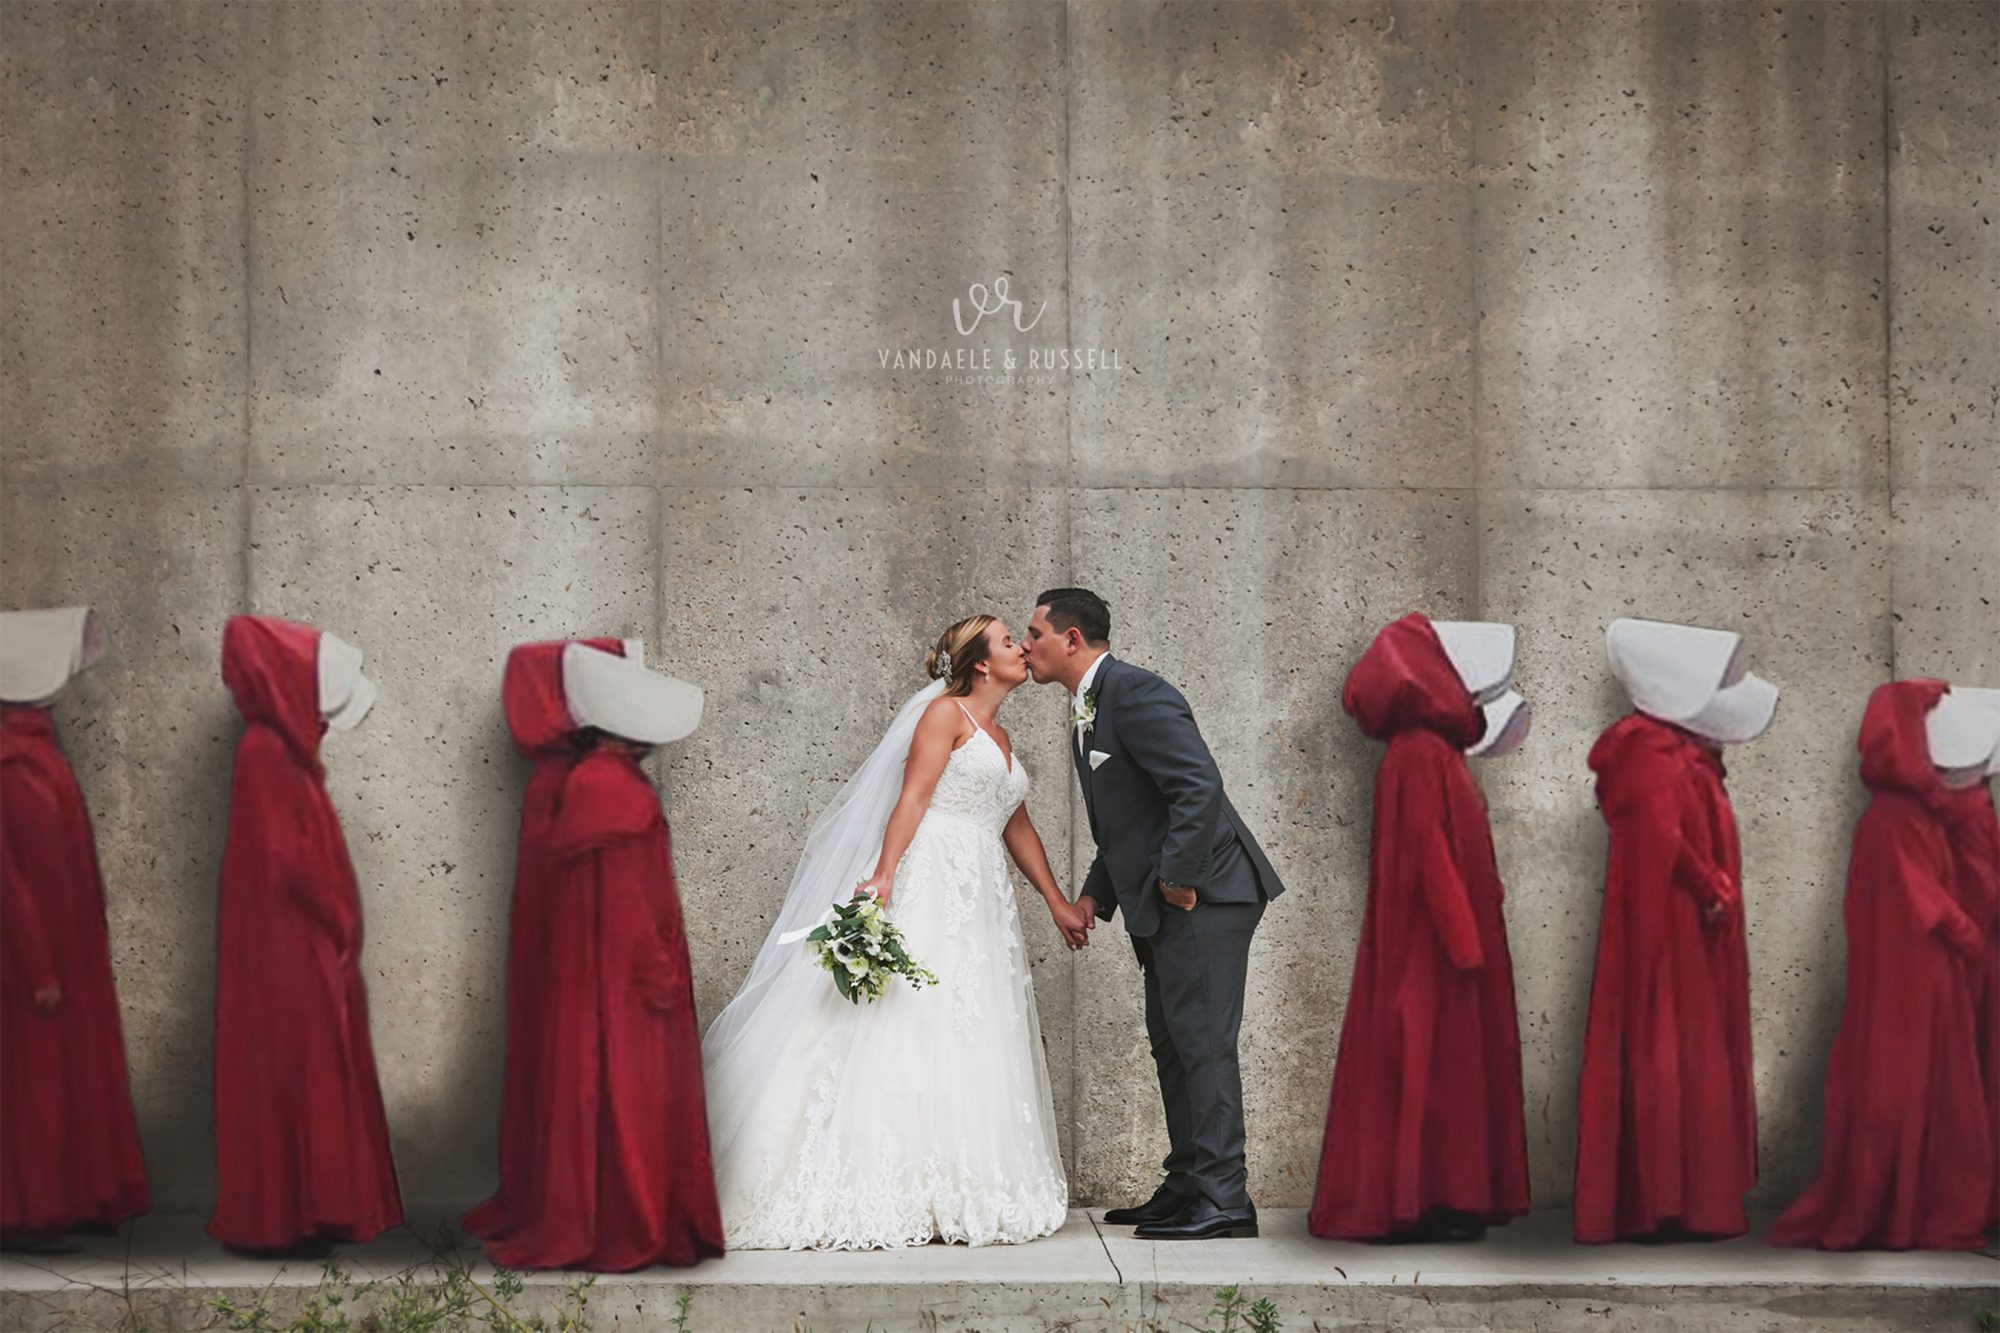 Handmaids Tale wedding